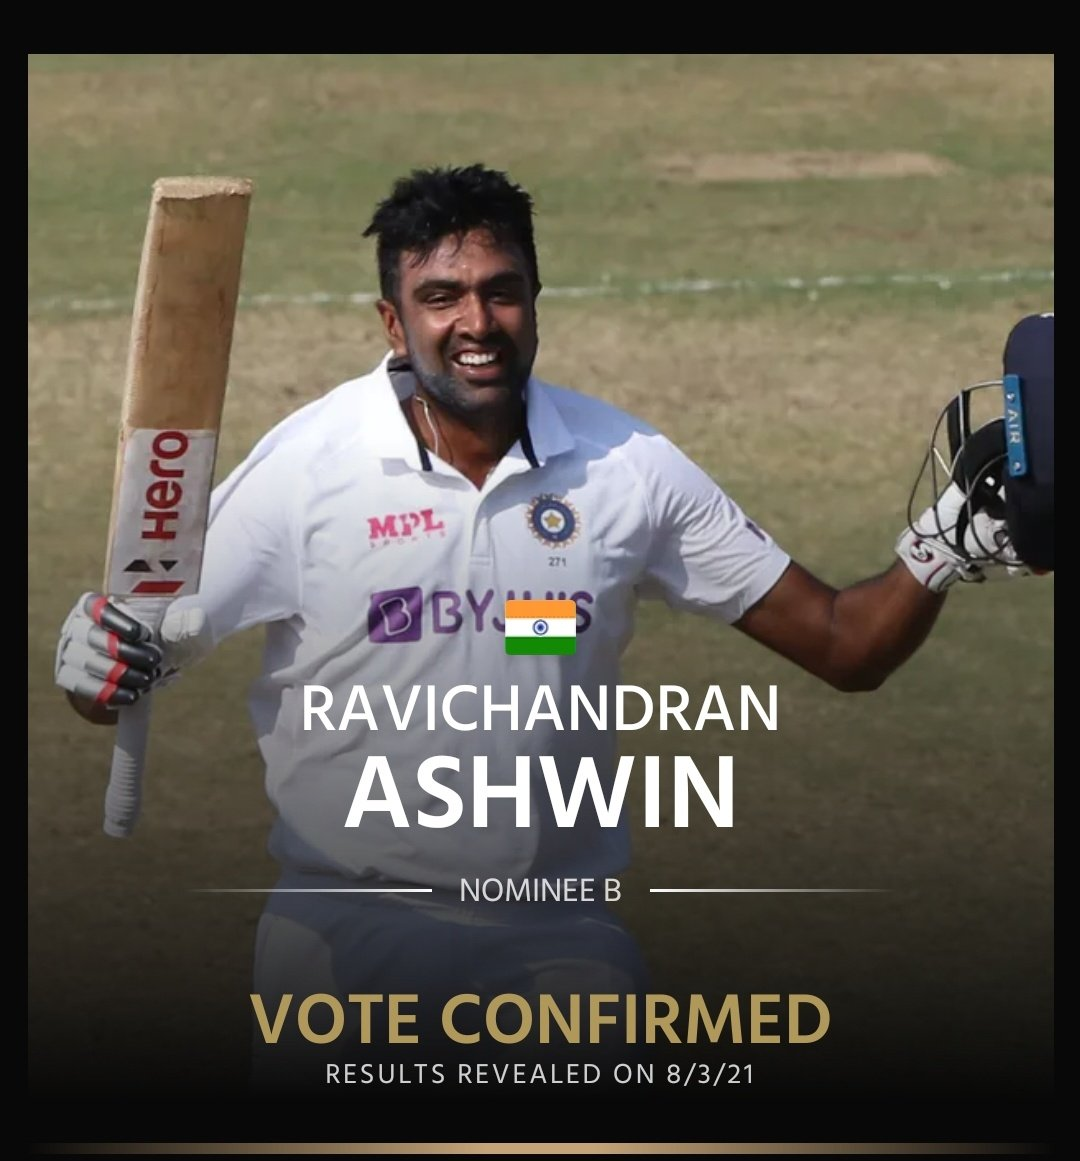 @ICC Ash is legendary spinner and he deserved to the title and only he is the allrounder from India representing icc player of the decade ;we should proud of him #ASHWINANNA #ASHWINBHAI #comeonnashh